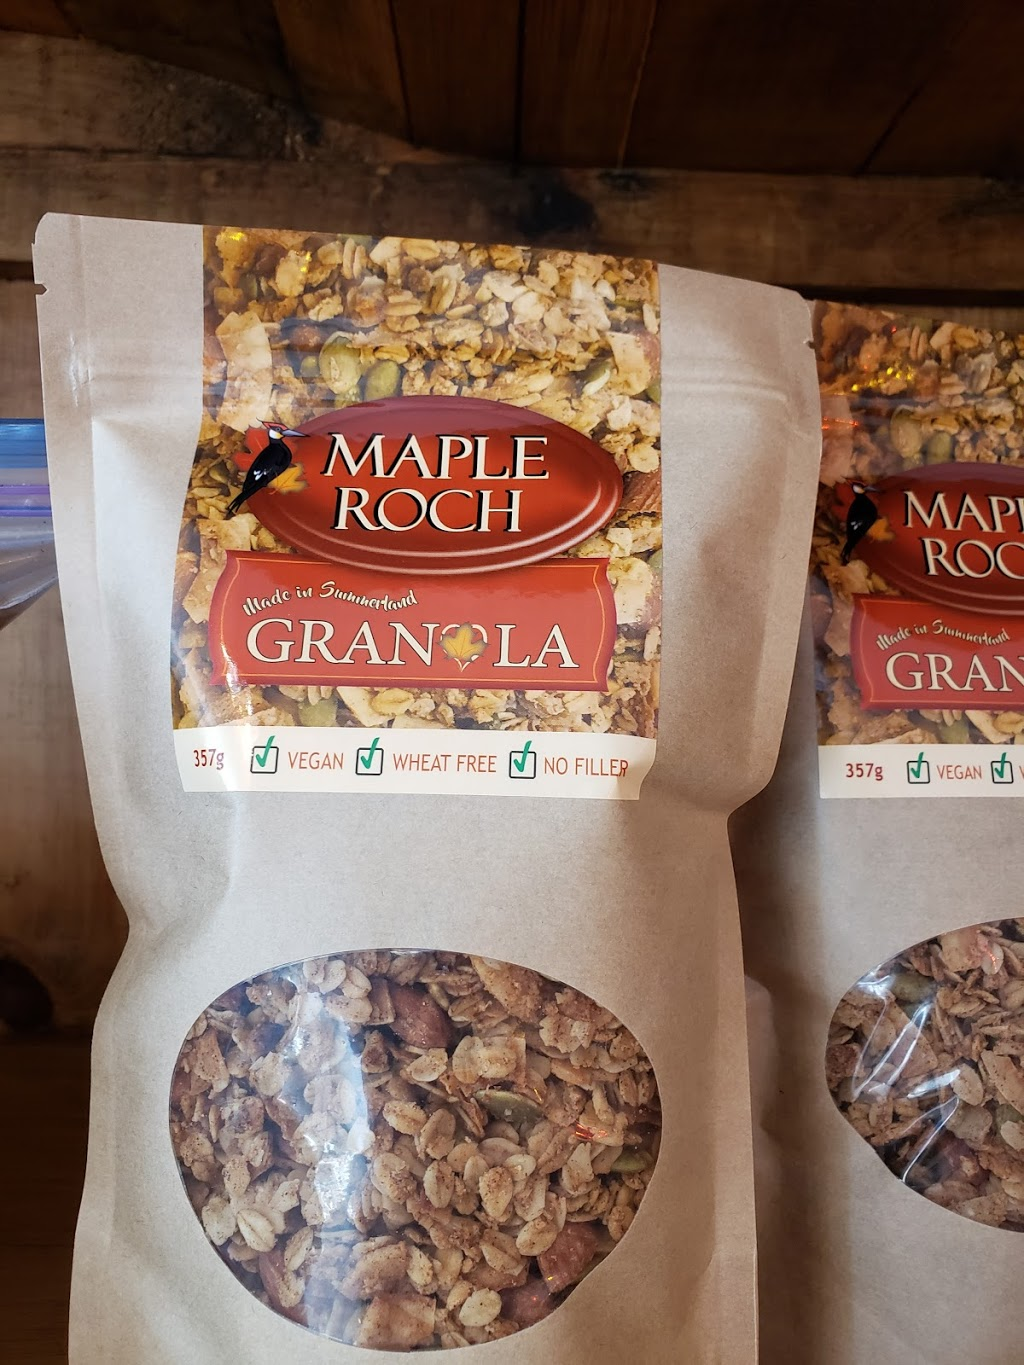 Maple Roch Pure Canadian Maple Store | store | 13224 Victoria Rd N, Summerland, BC V0H 1Z0, Canada | 7785167624 OR +1 778-516-7624